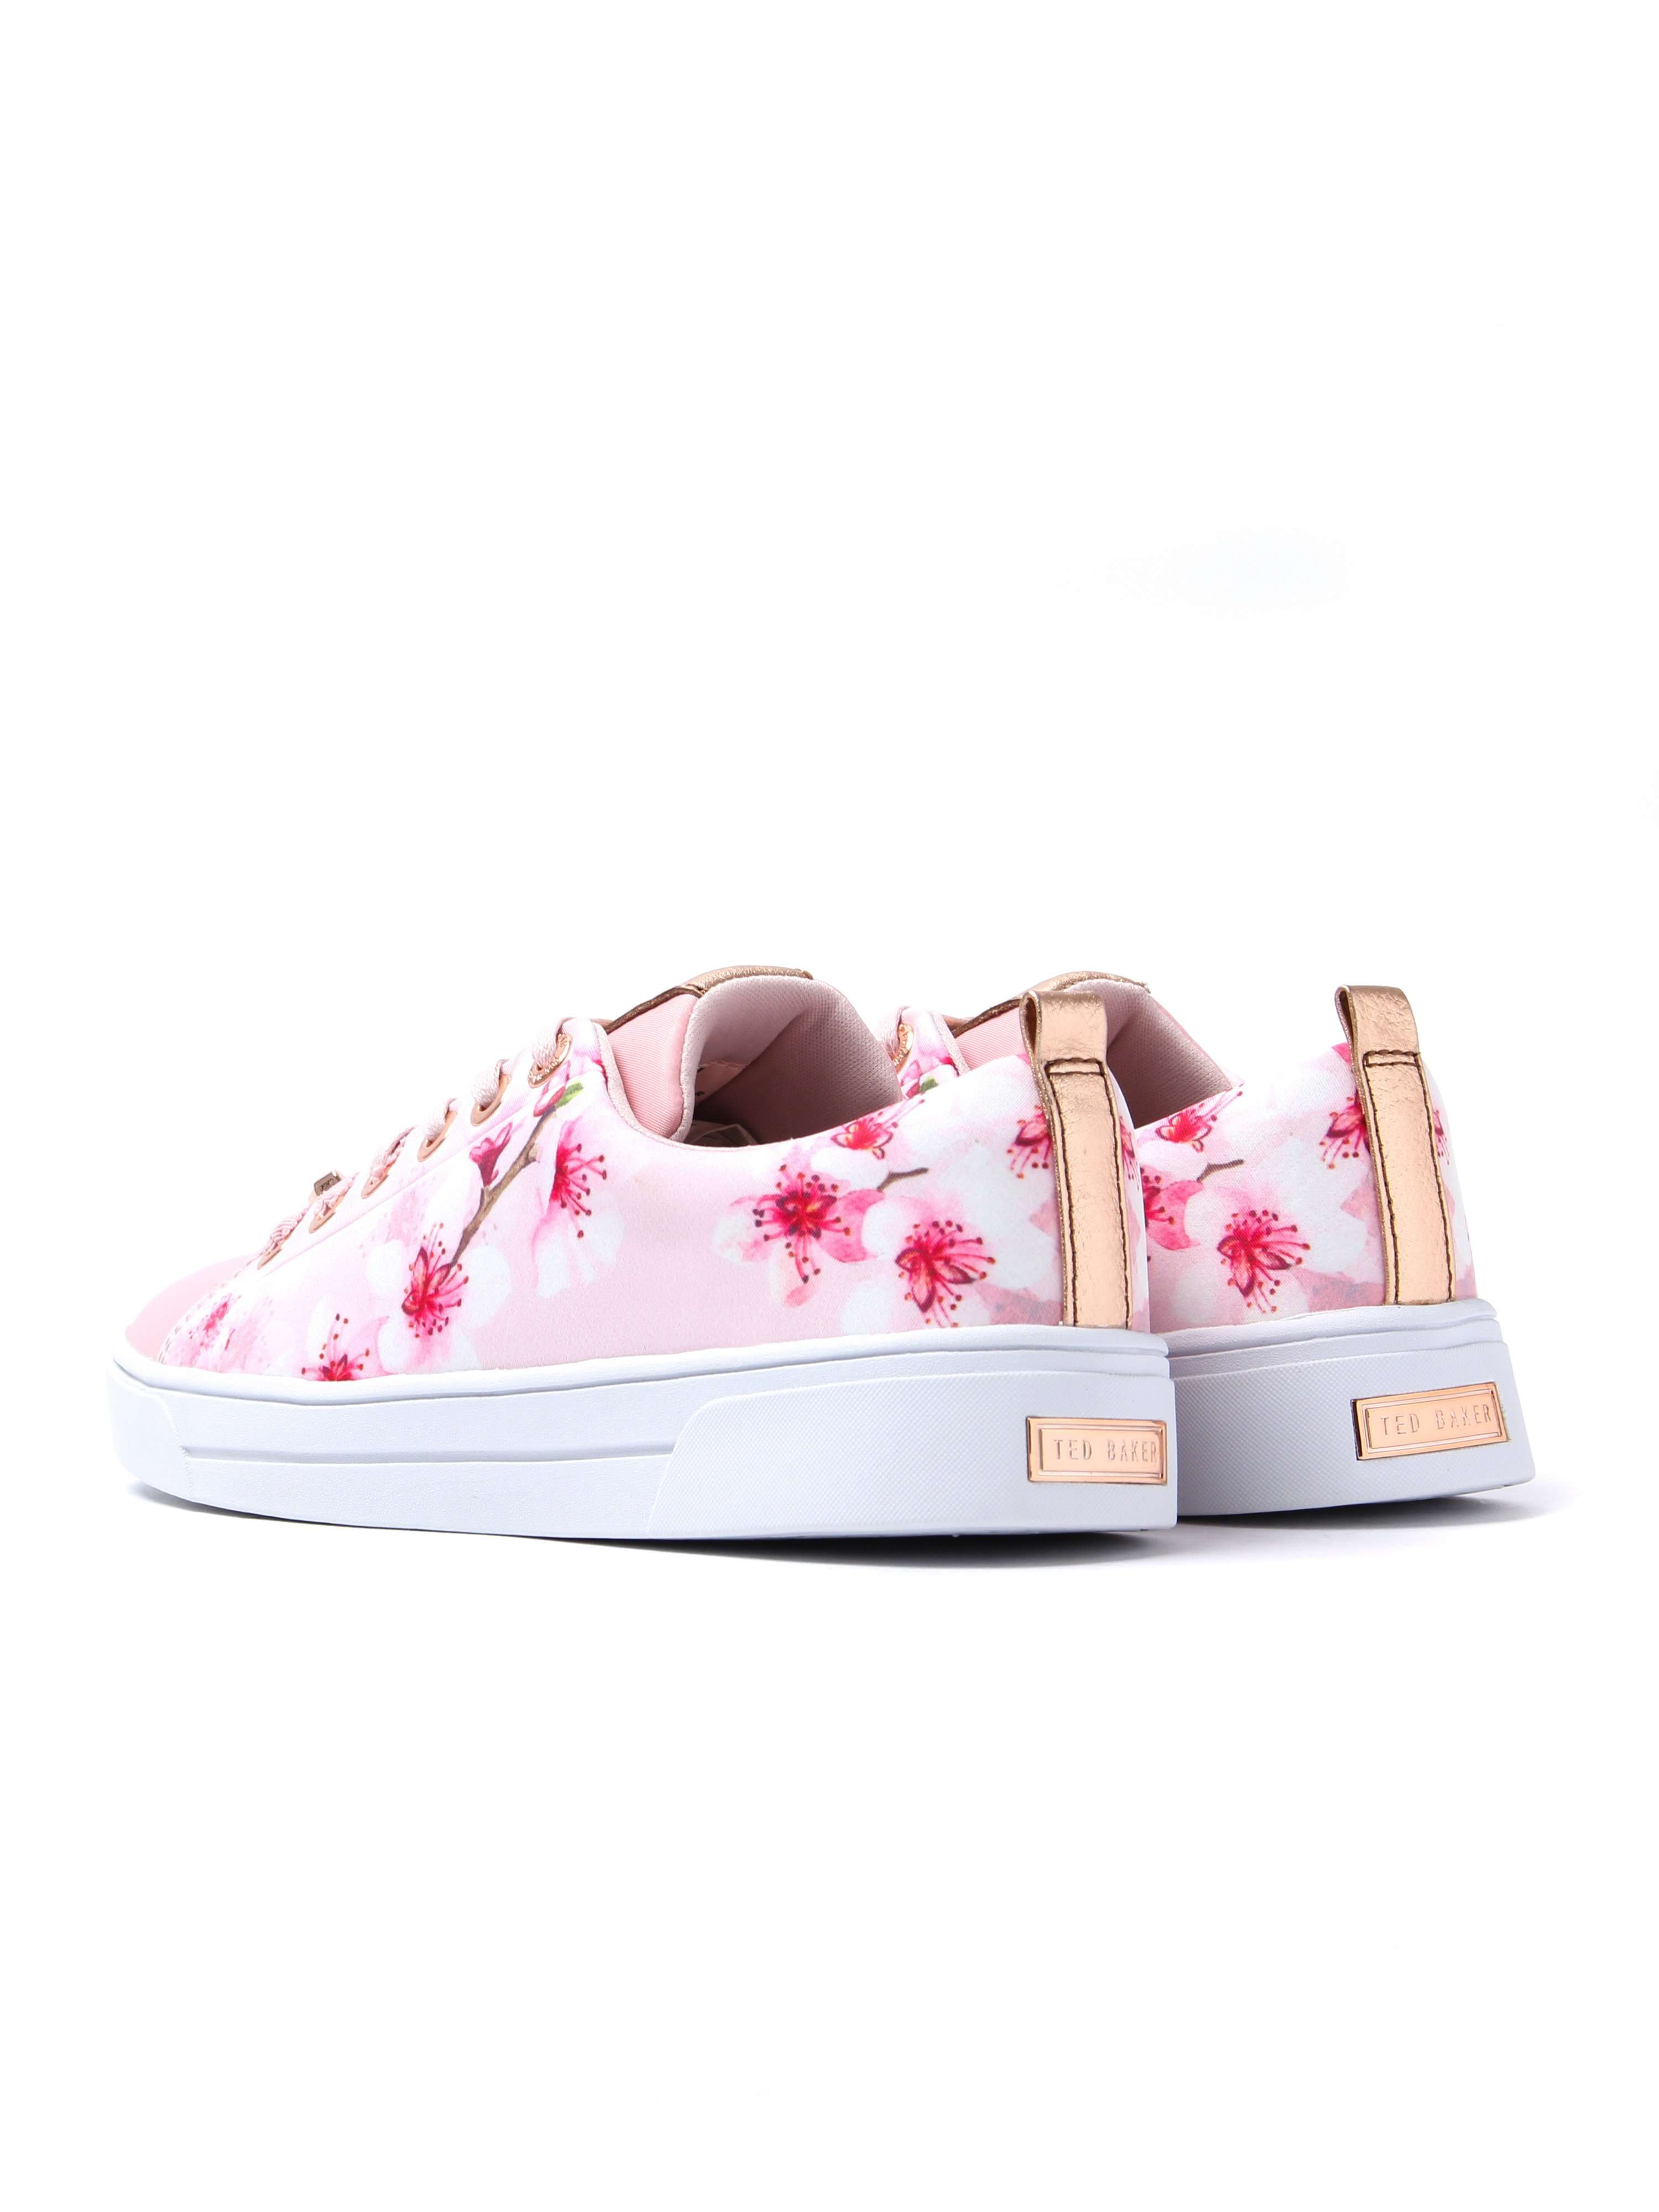 Ted Baker Women's Ahfira Trainers - Pink Blossom